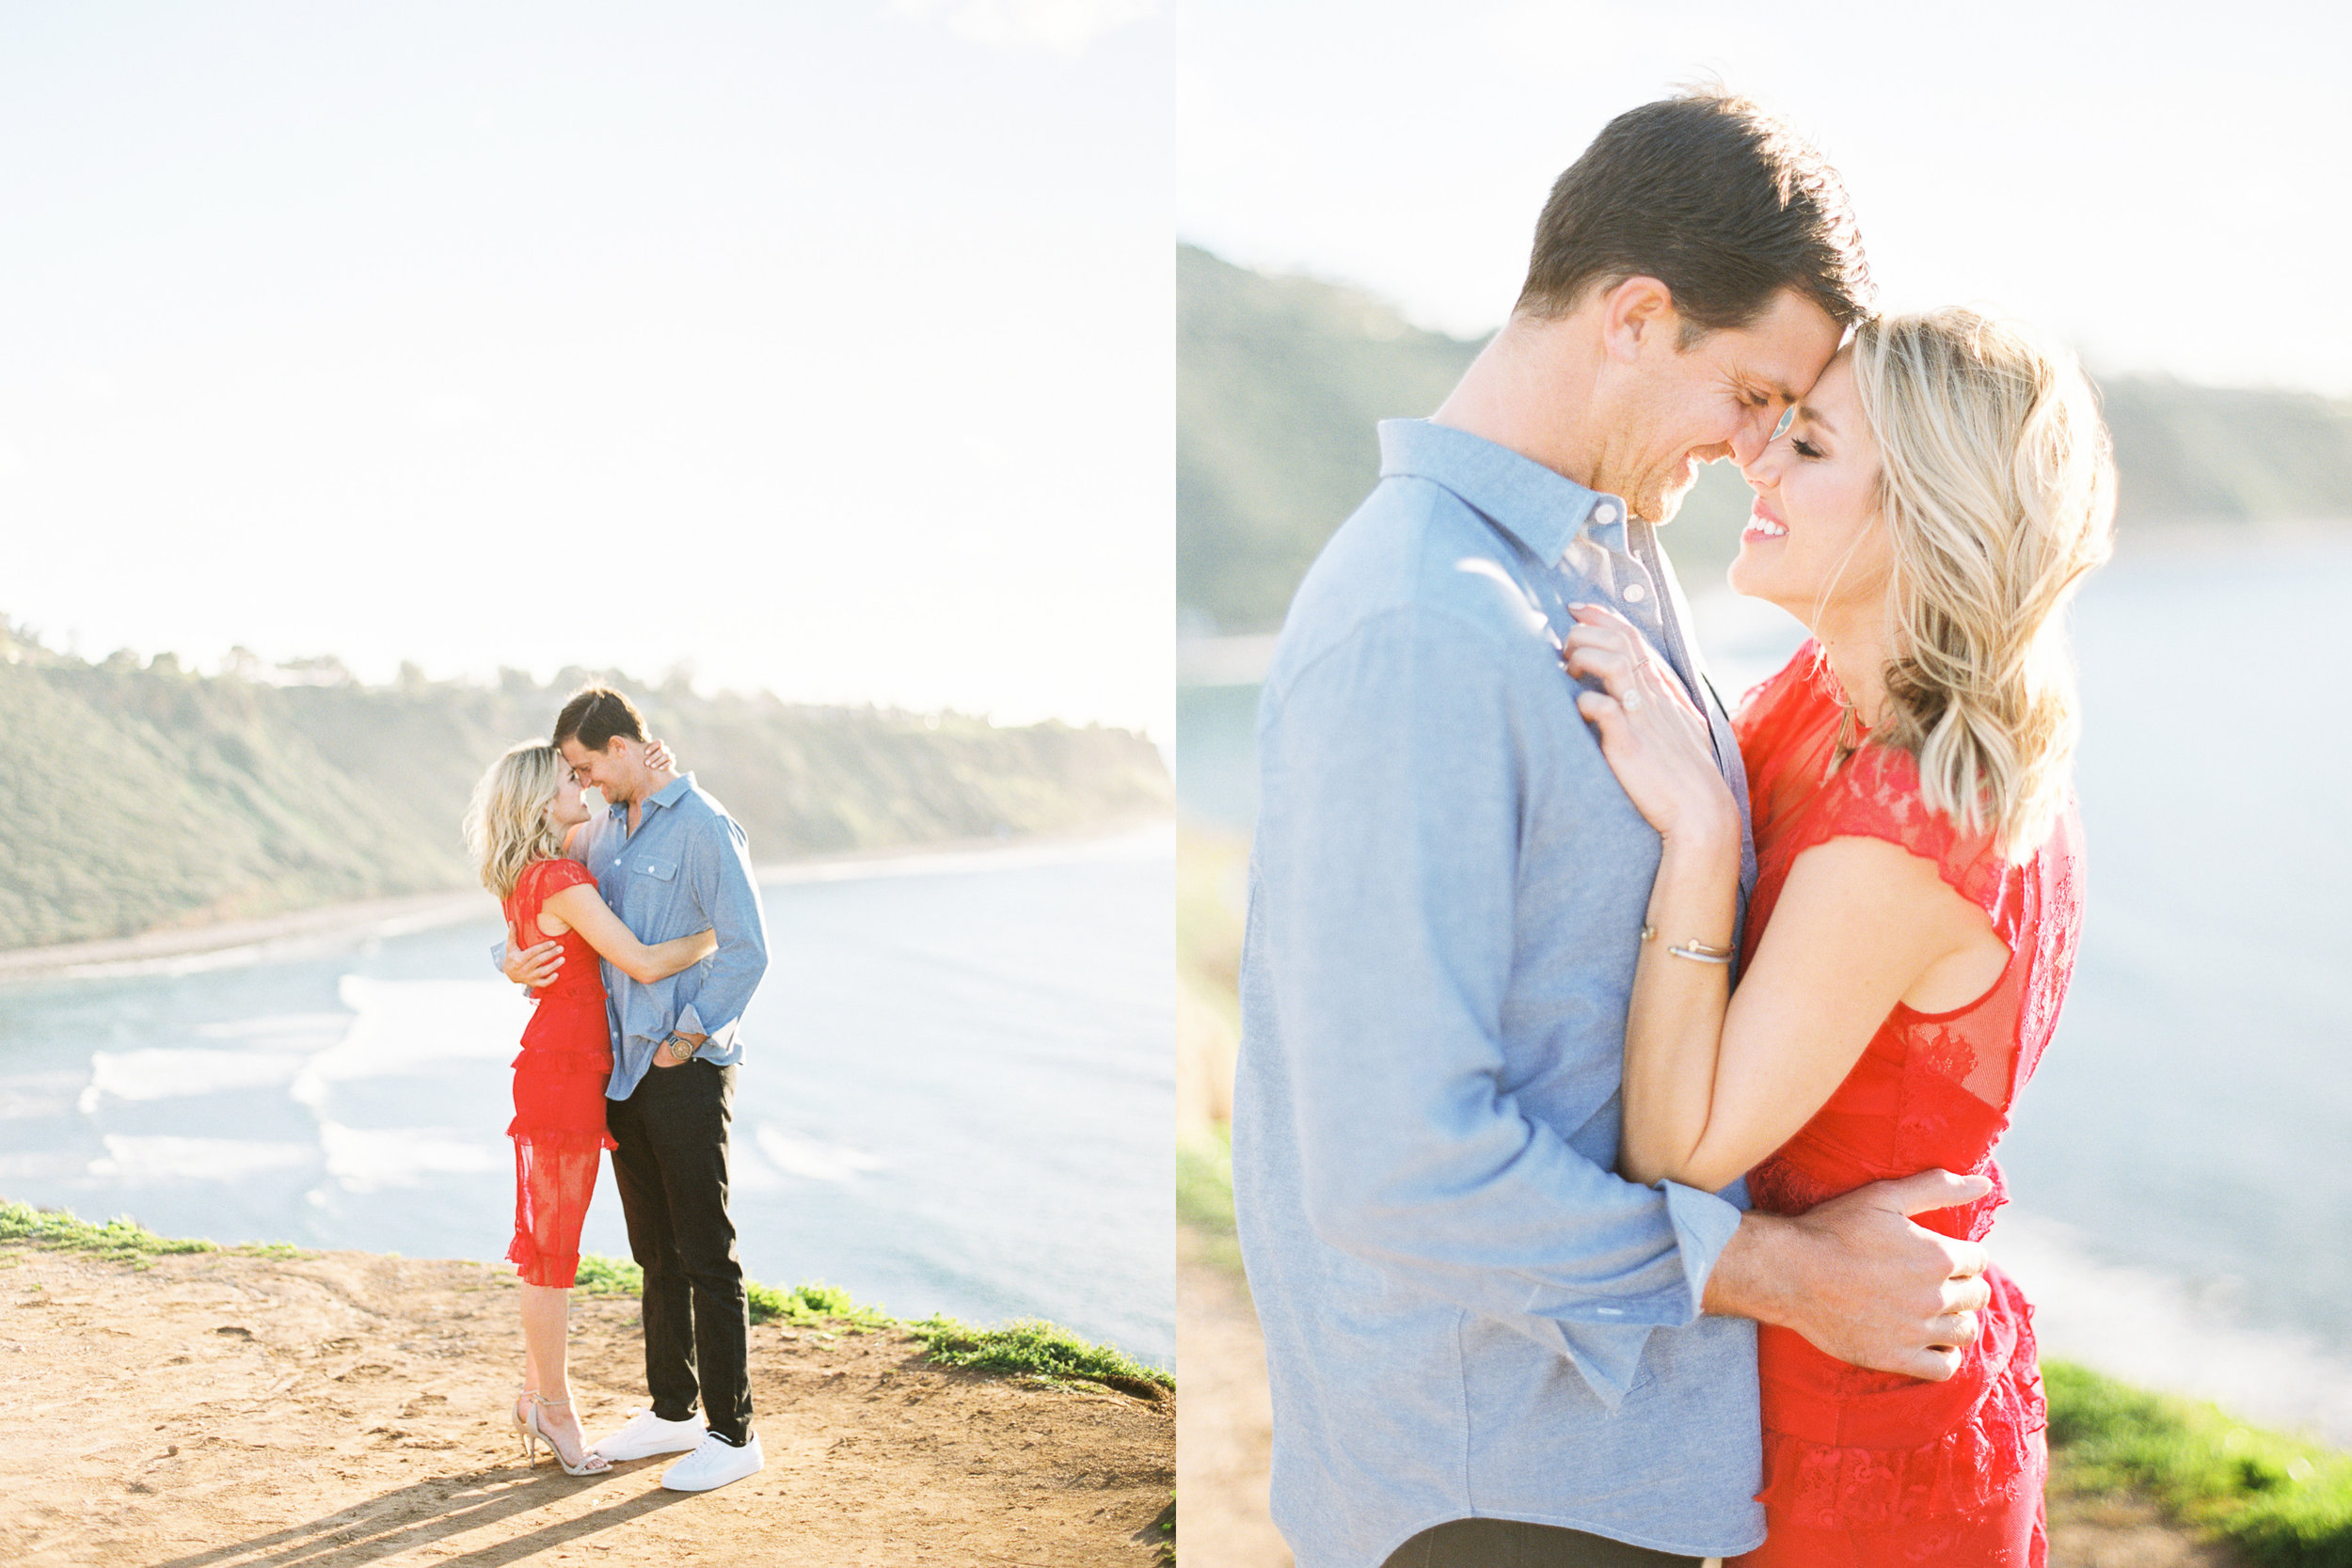 Rachel Owens Photography - Palos Verdes Beach Engagement - 1.jpg